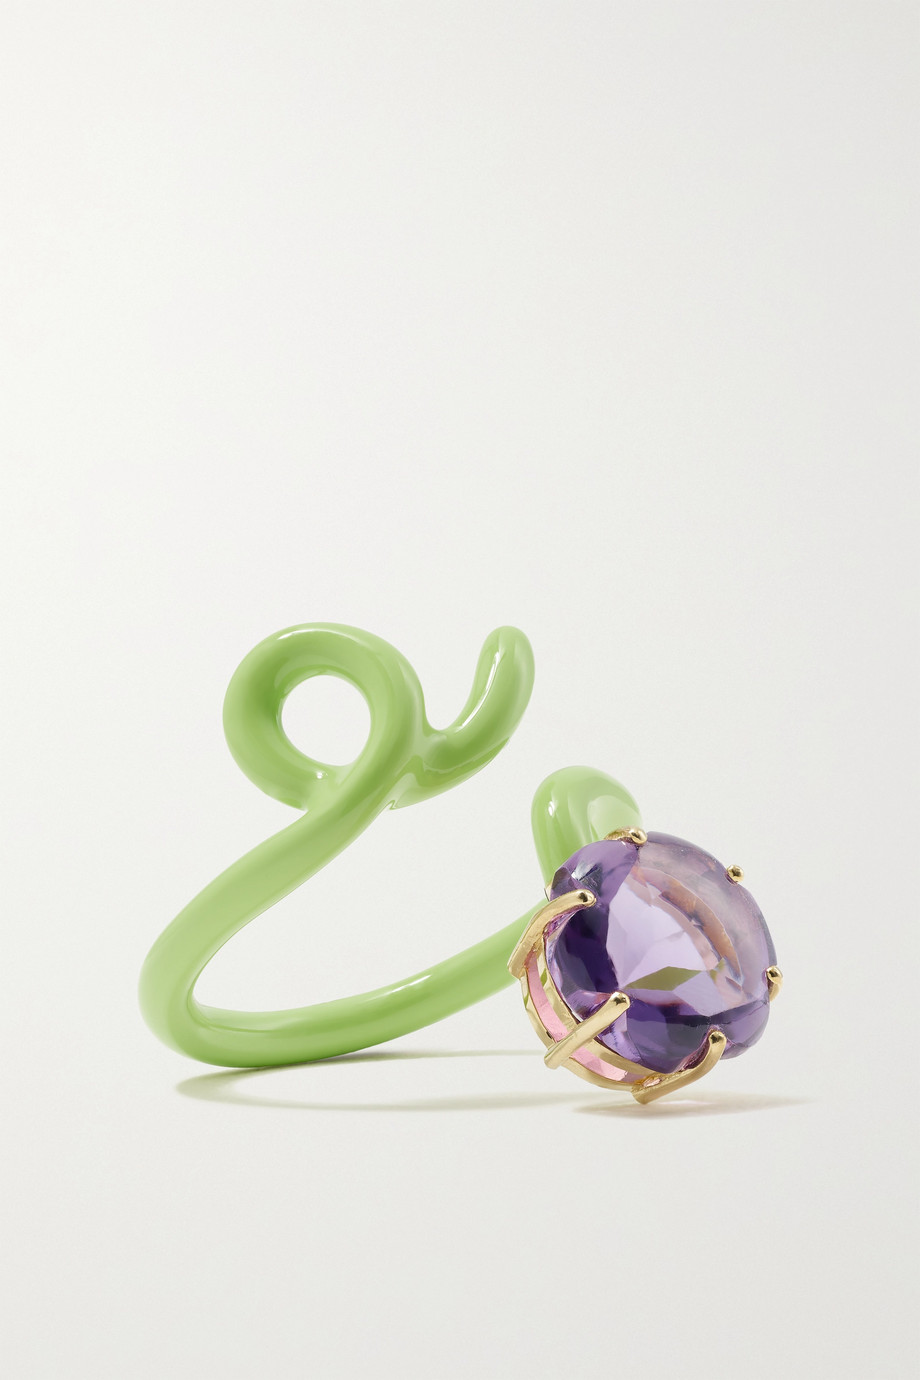 BEA BONGIASCA Flower Funk 9-karat gold, silver, enamel and amethyst ring